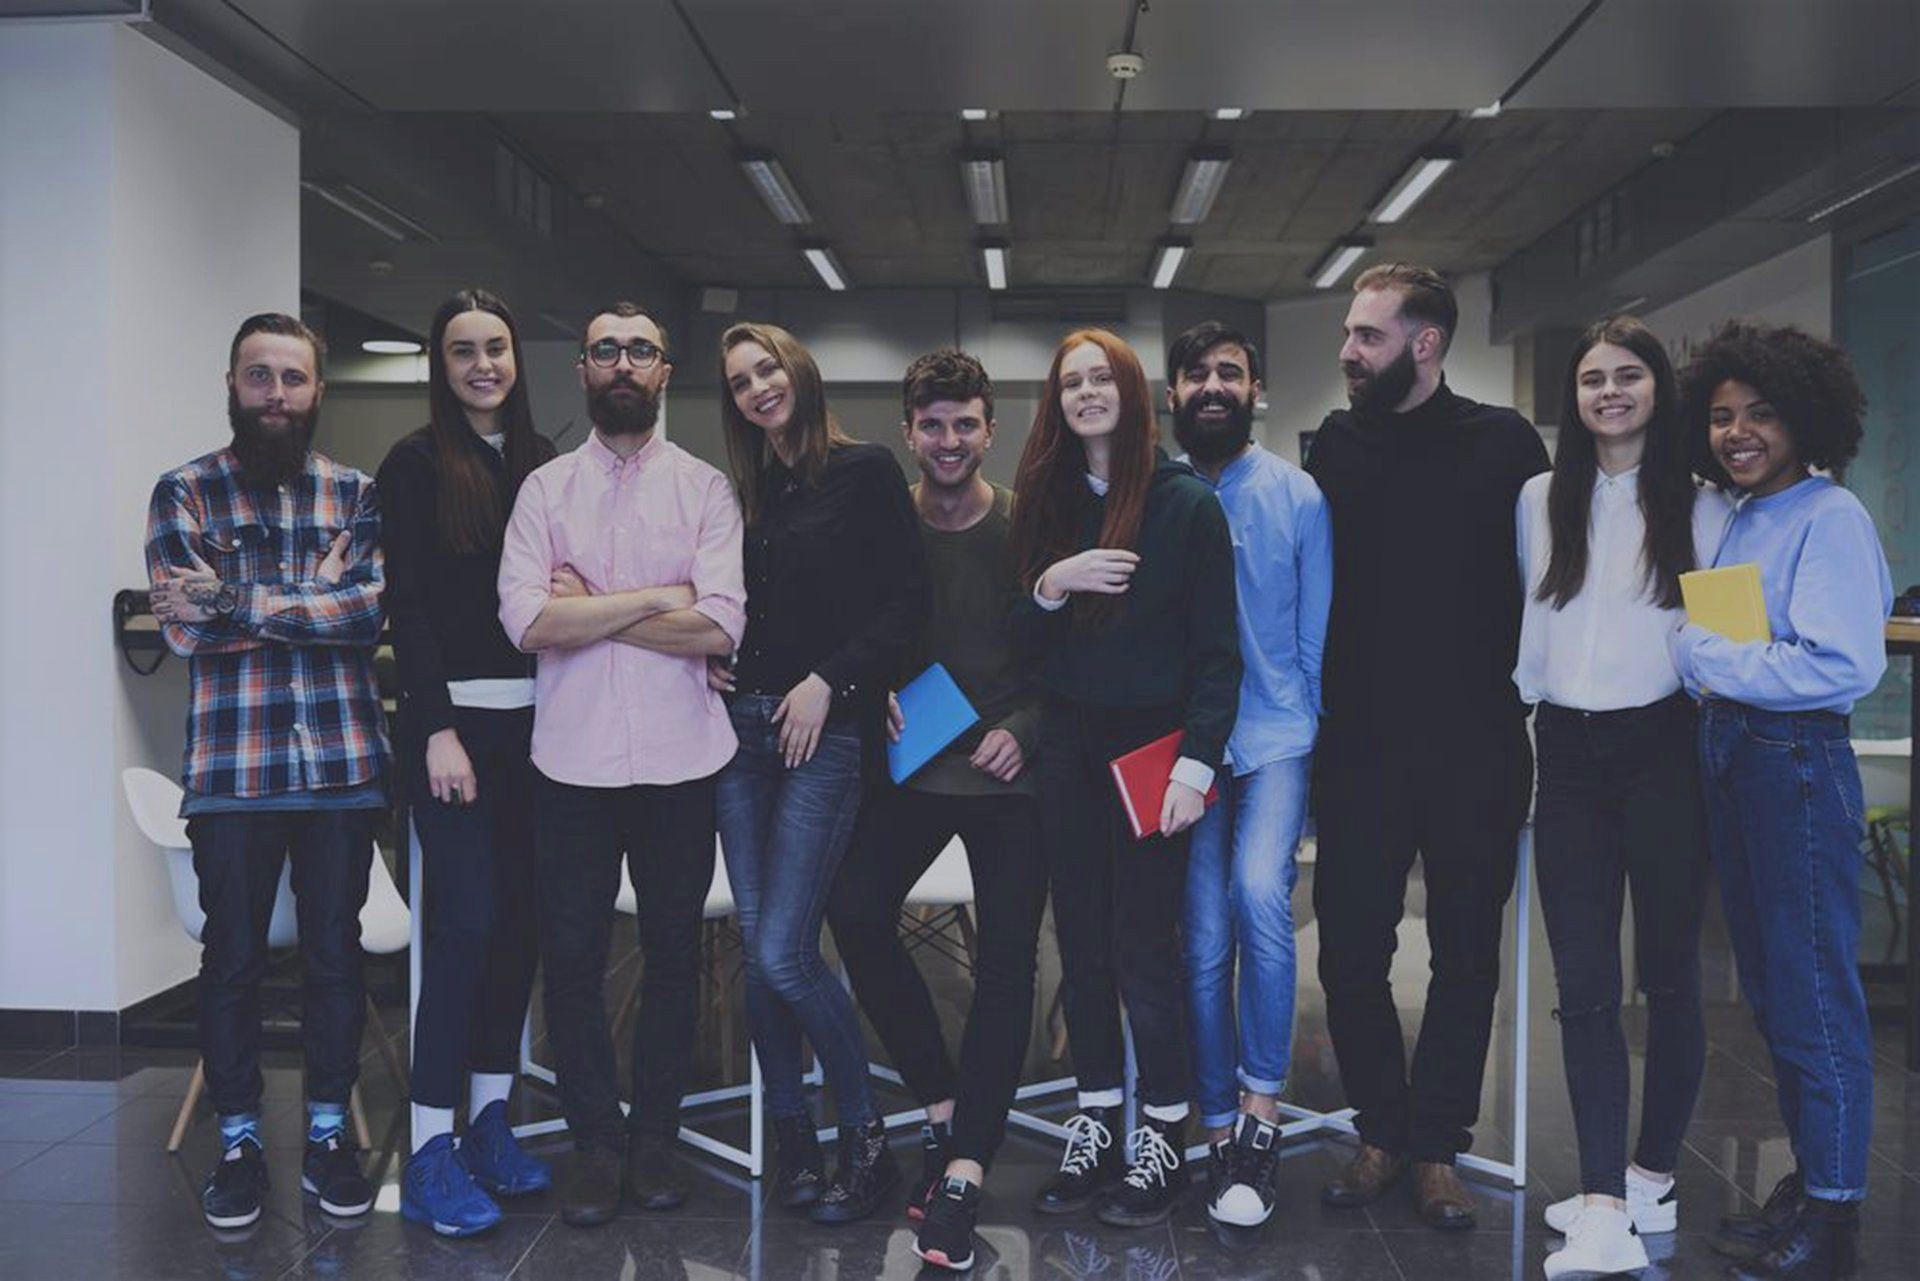 group of people image